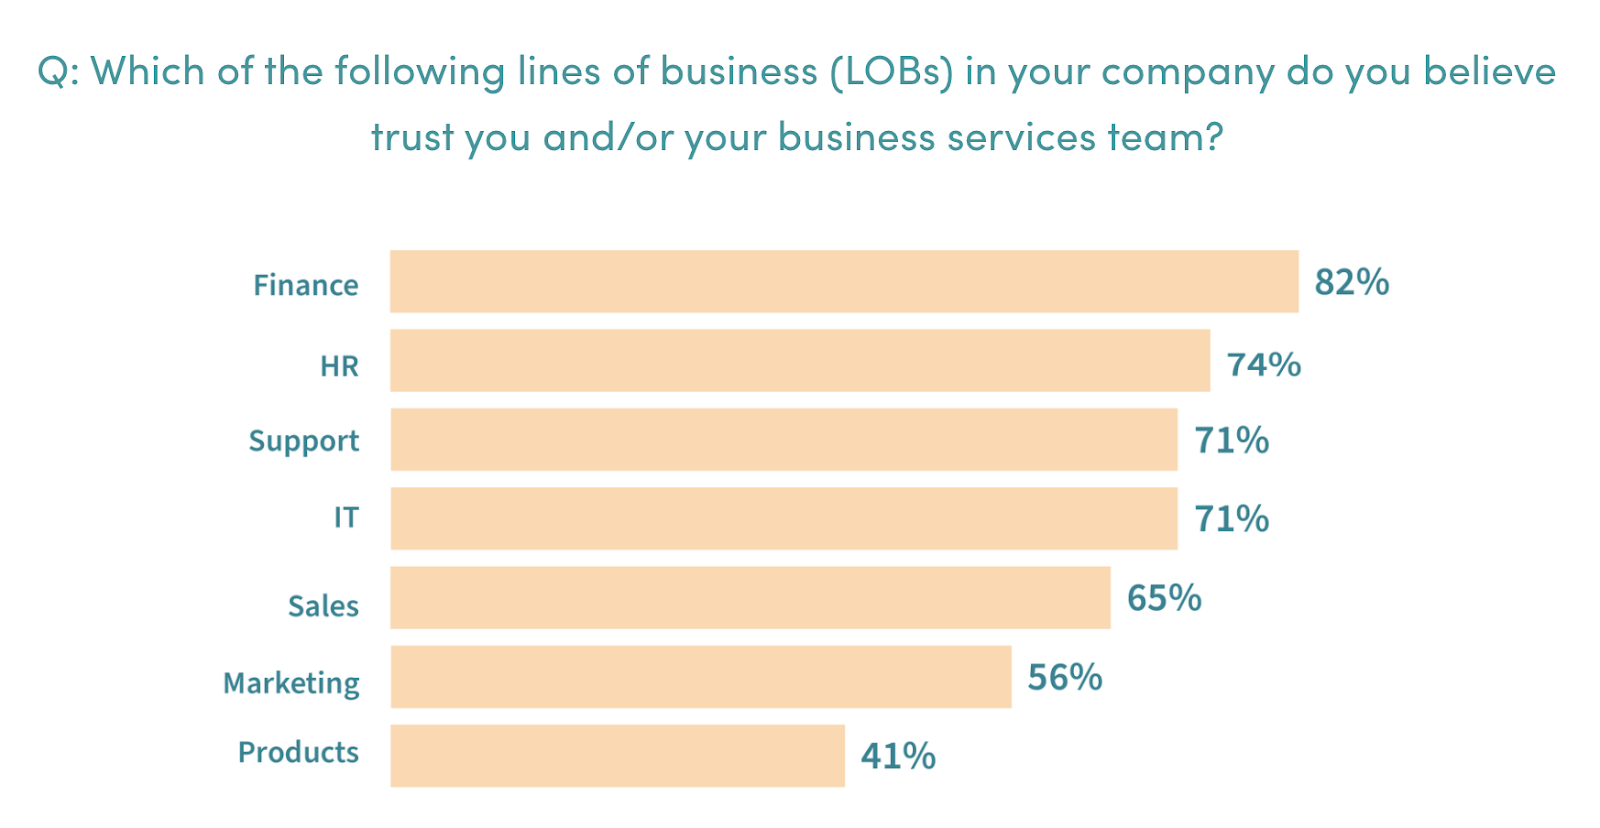 A bar chart that shows how much trust BT leaders believe lines of business have in their team.